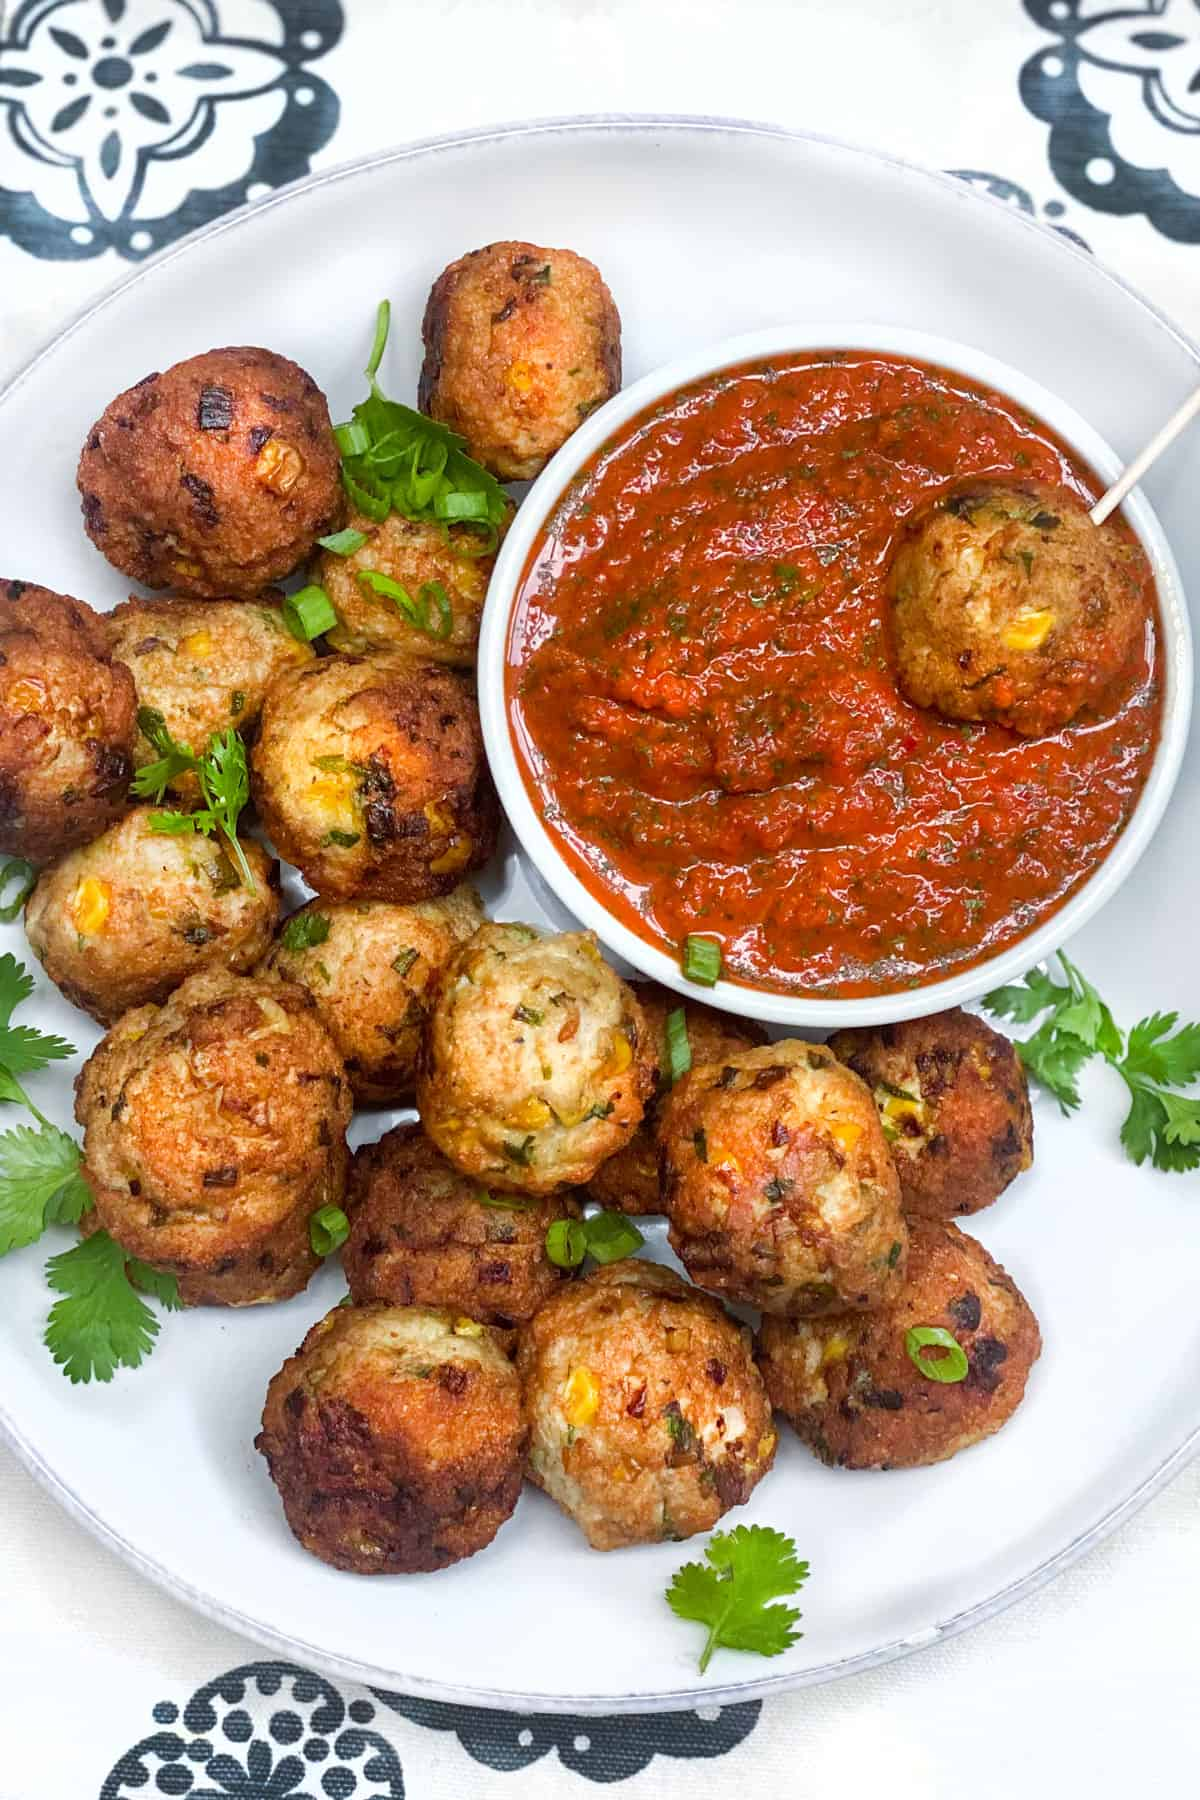 16 turkey corn meatballs on a plate surrounding a small bowl of roasted red pepper sauce, with one meatballs on a toothpick, resting in the sauce